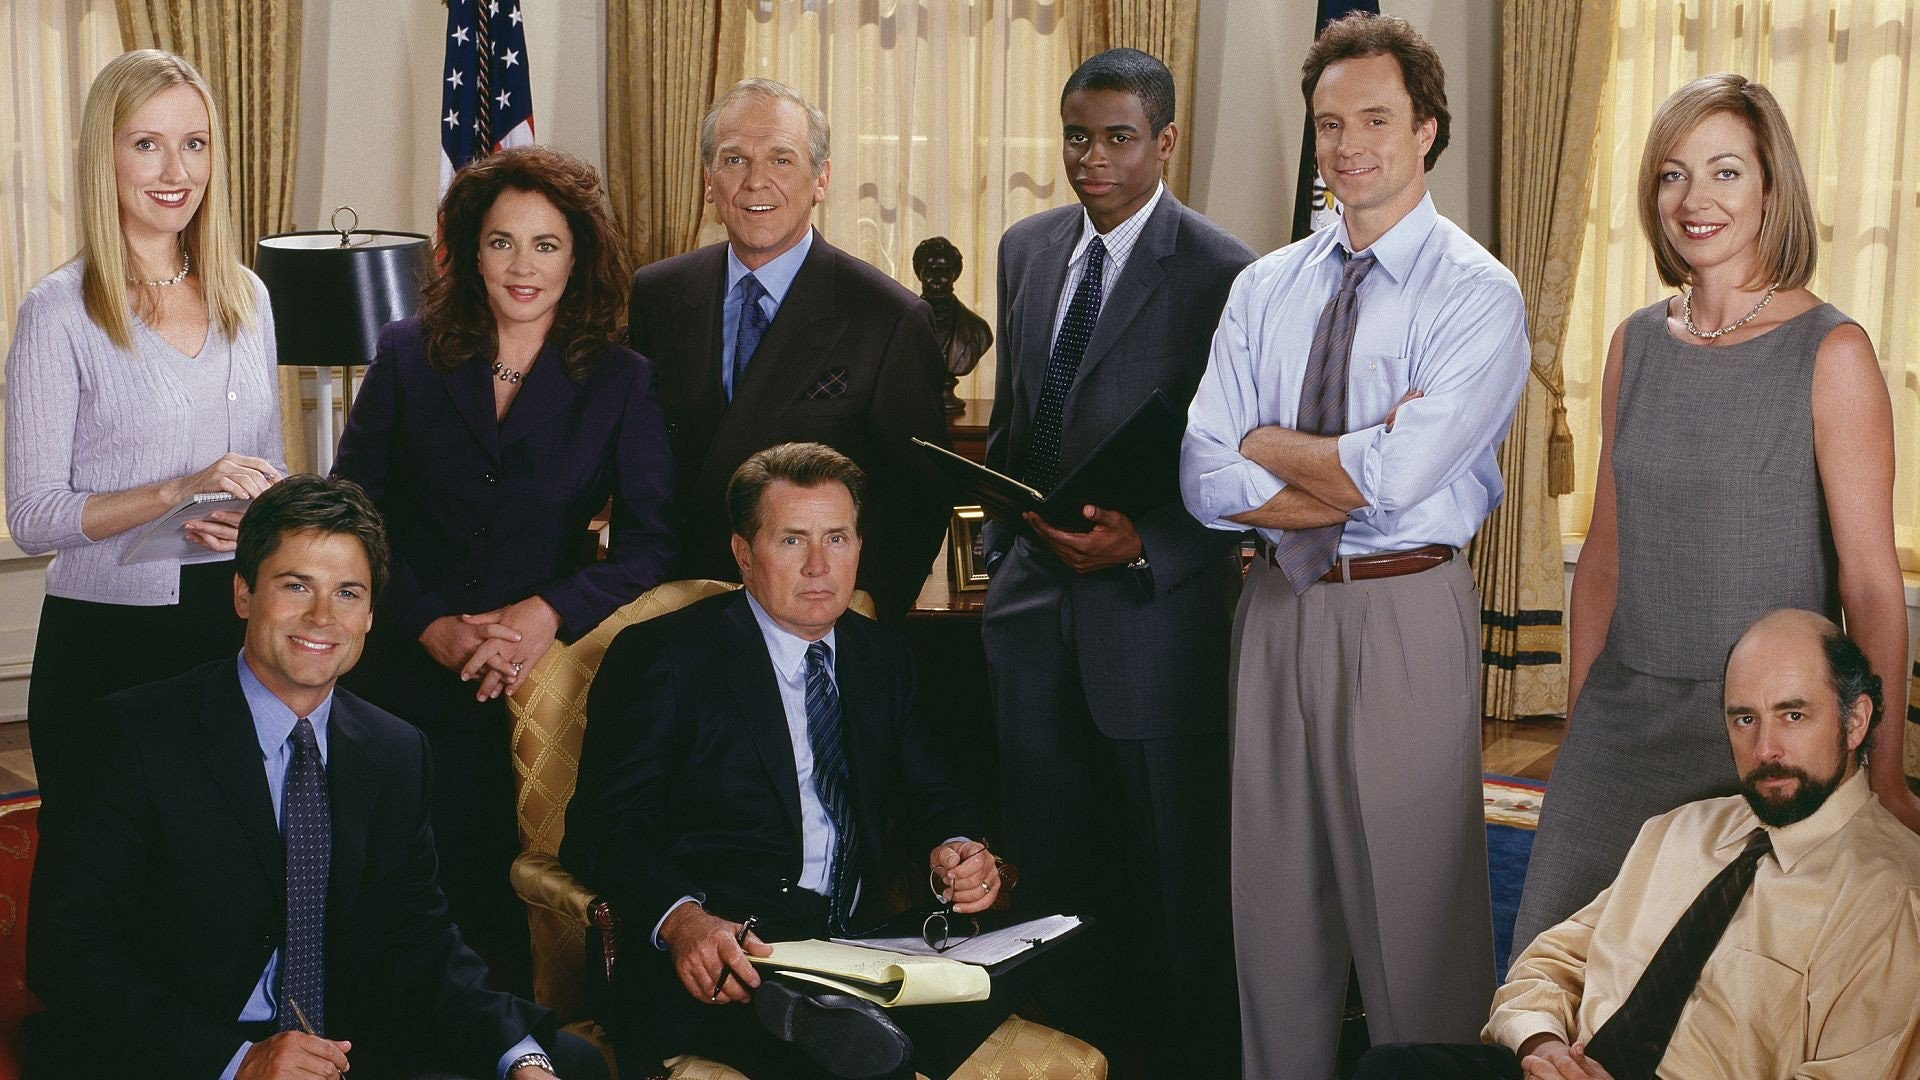 Soundtrack of The West Wing